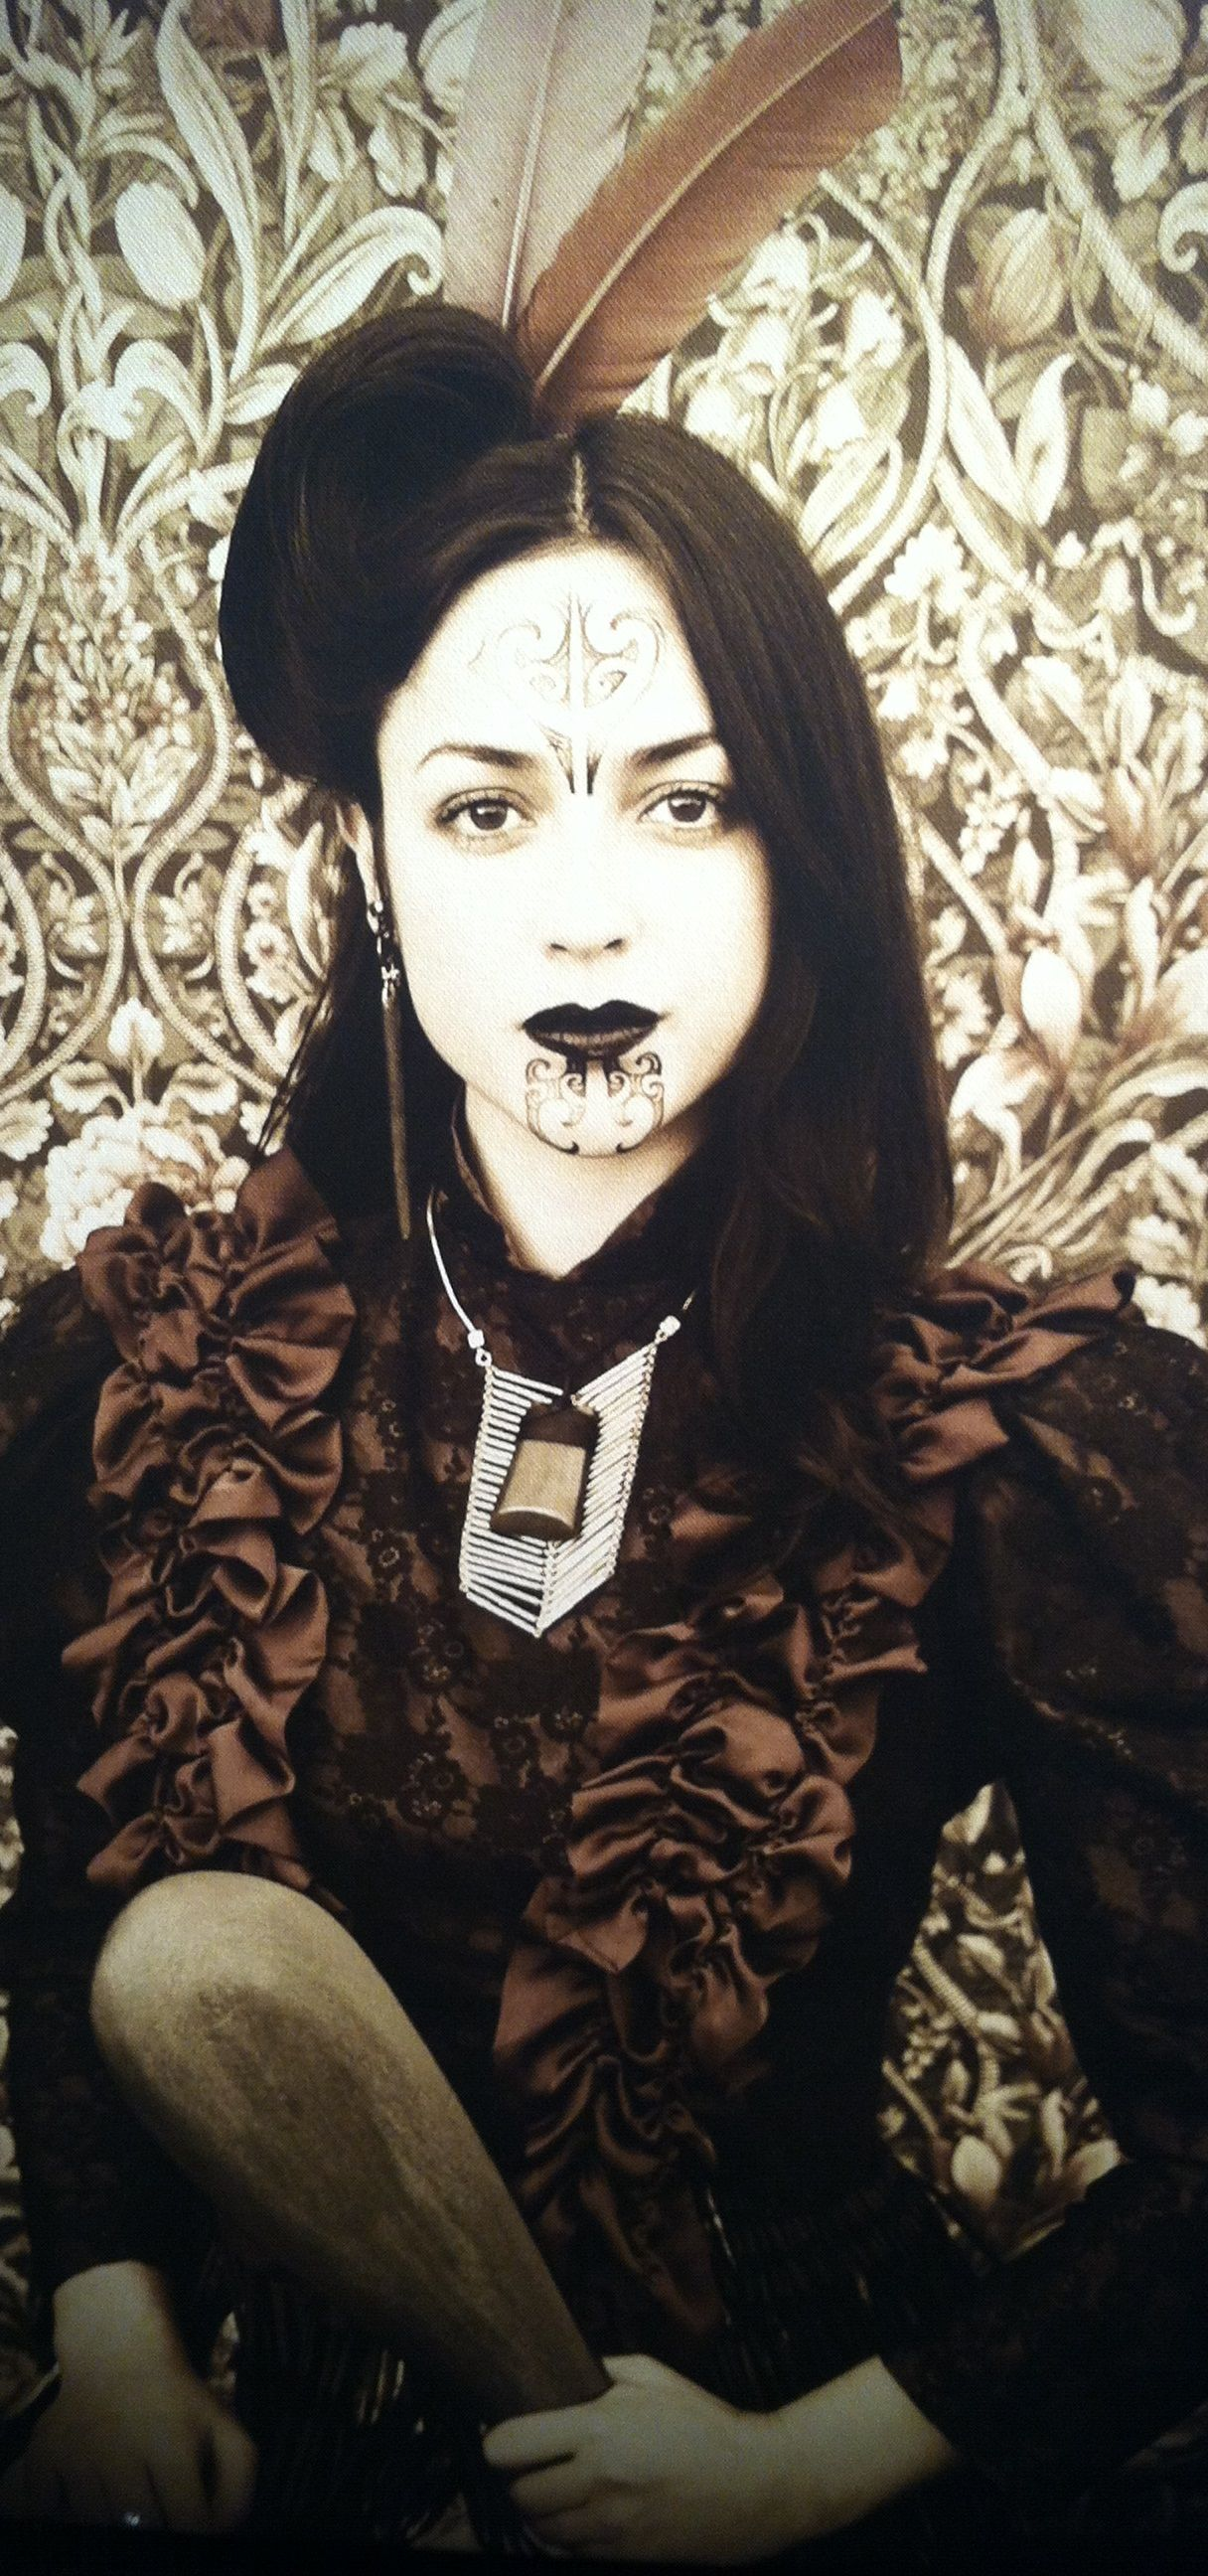 Maori Face Tattoo Designs Women: Model And ManagerOwner Of N Model Management